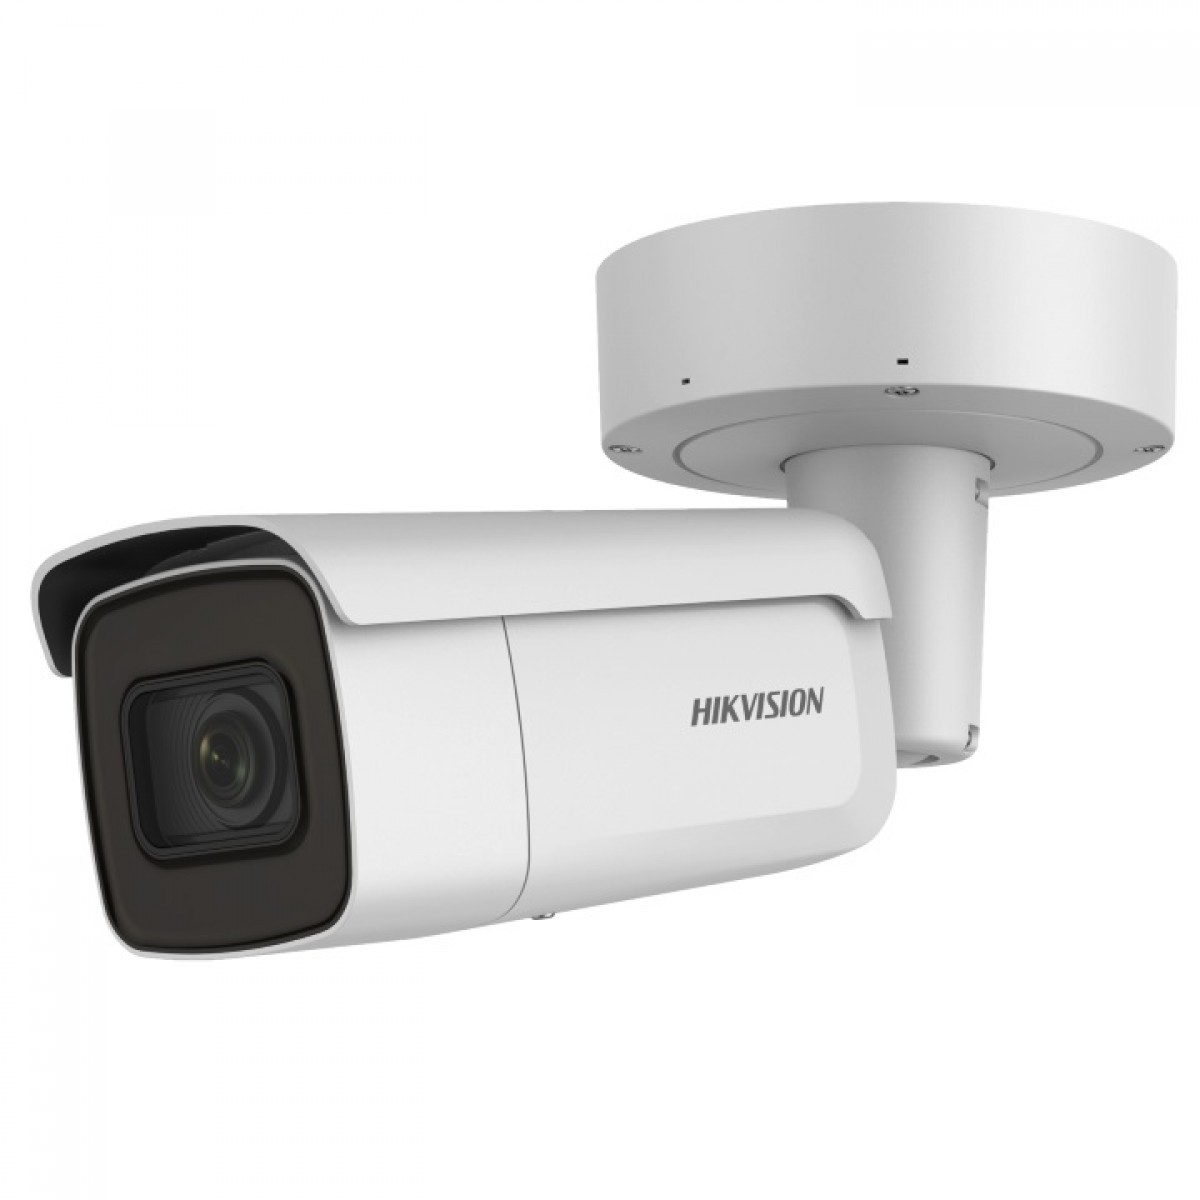 Hikvision DS-2CD2643G0-IZS 4MP H.265 2.8-12mm Motorized Verifocal Lens 50M IR SD-Card POE Bullet IP Network Security CCTV Camera